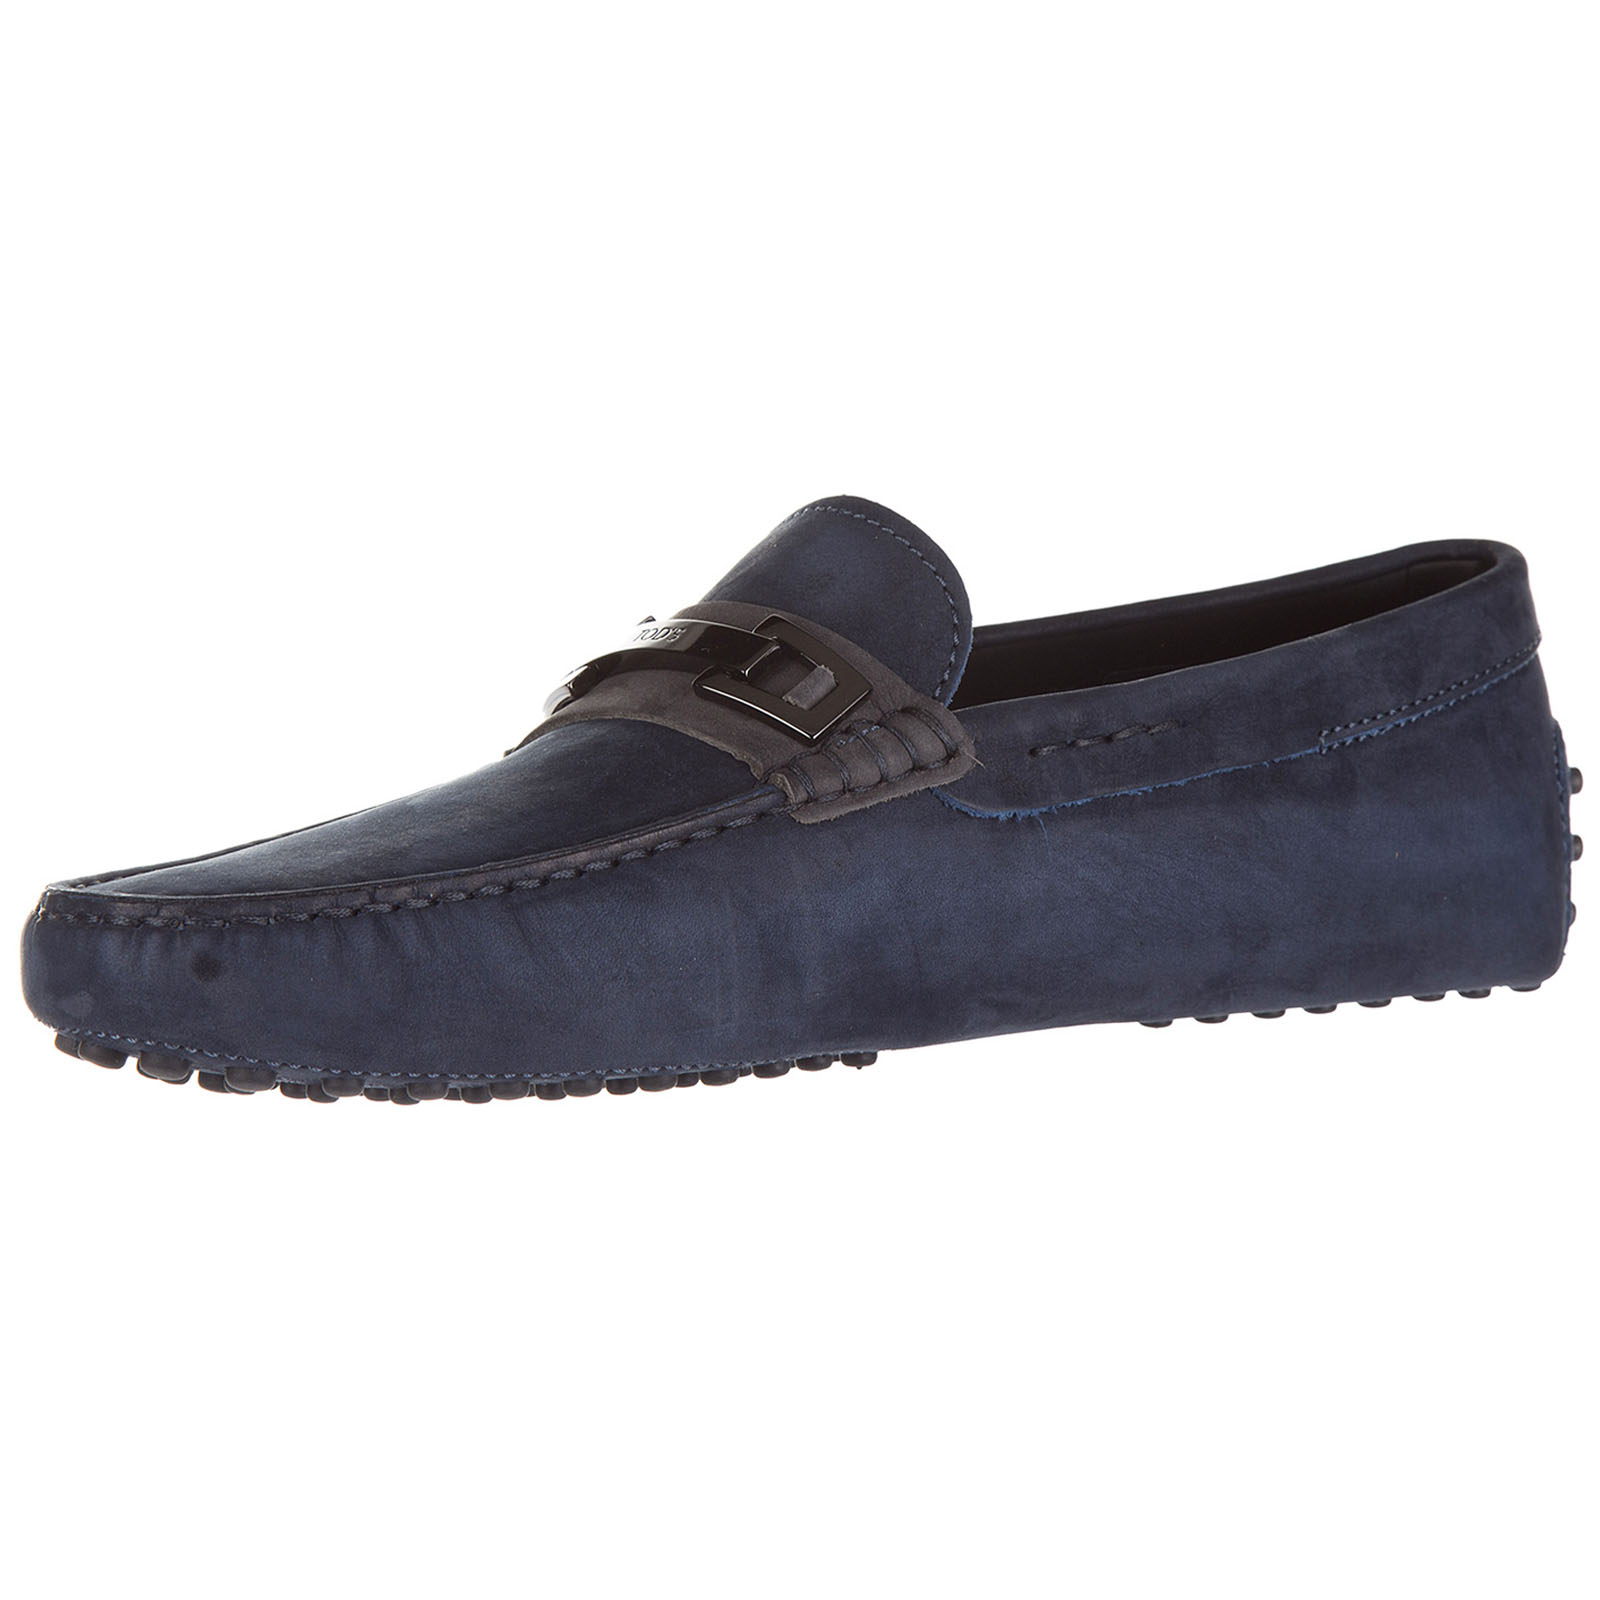 Men's suede loafers moccasins clamp